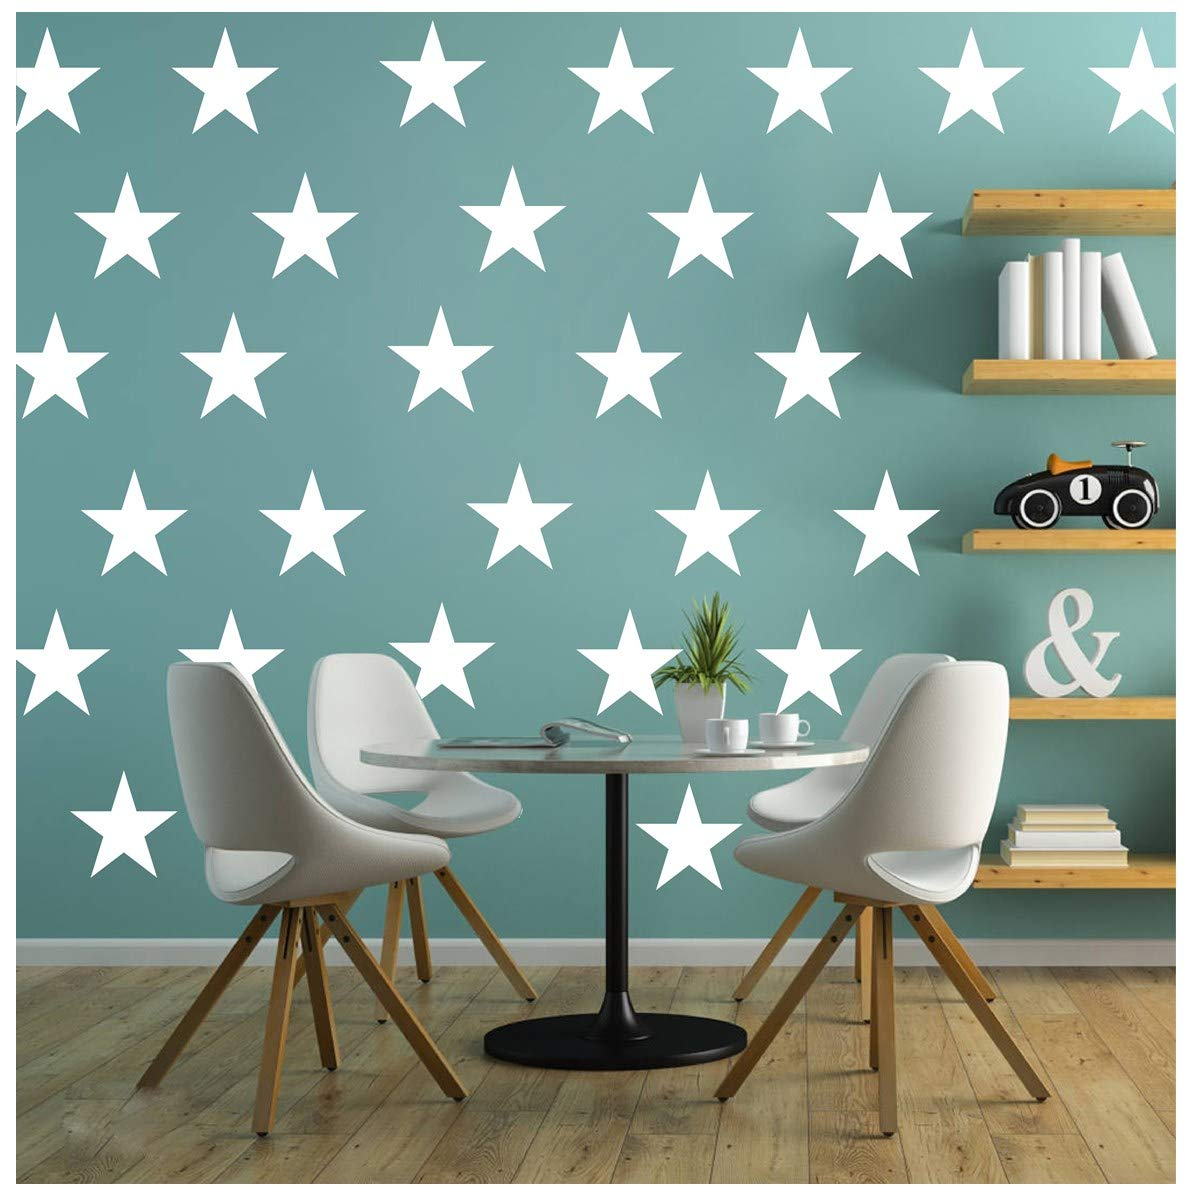 Melissalove 48pcs/Set of Large White Stars Vinyl Wall Decor Stickers DIY White Star Wall Decals Art for Kids,Nursery Room Decor Mural Wallpaper D399 (White)